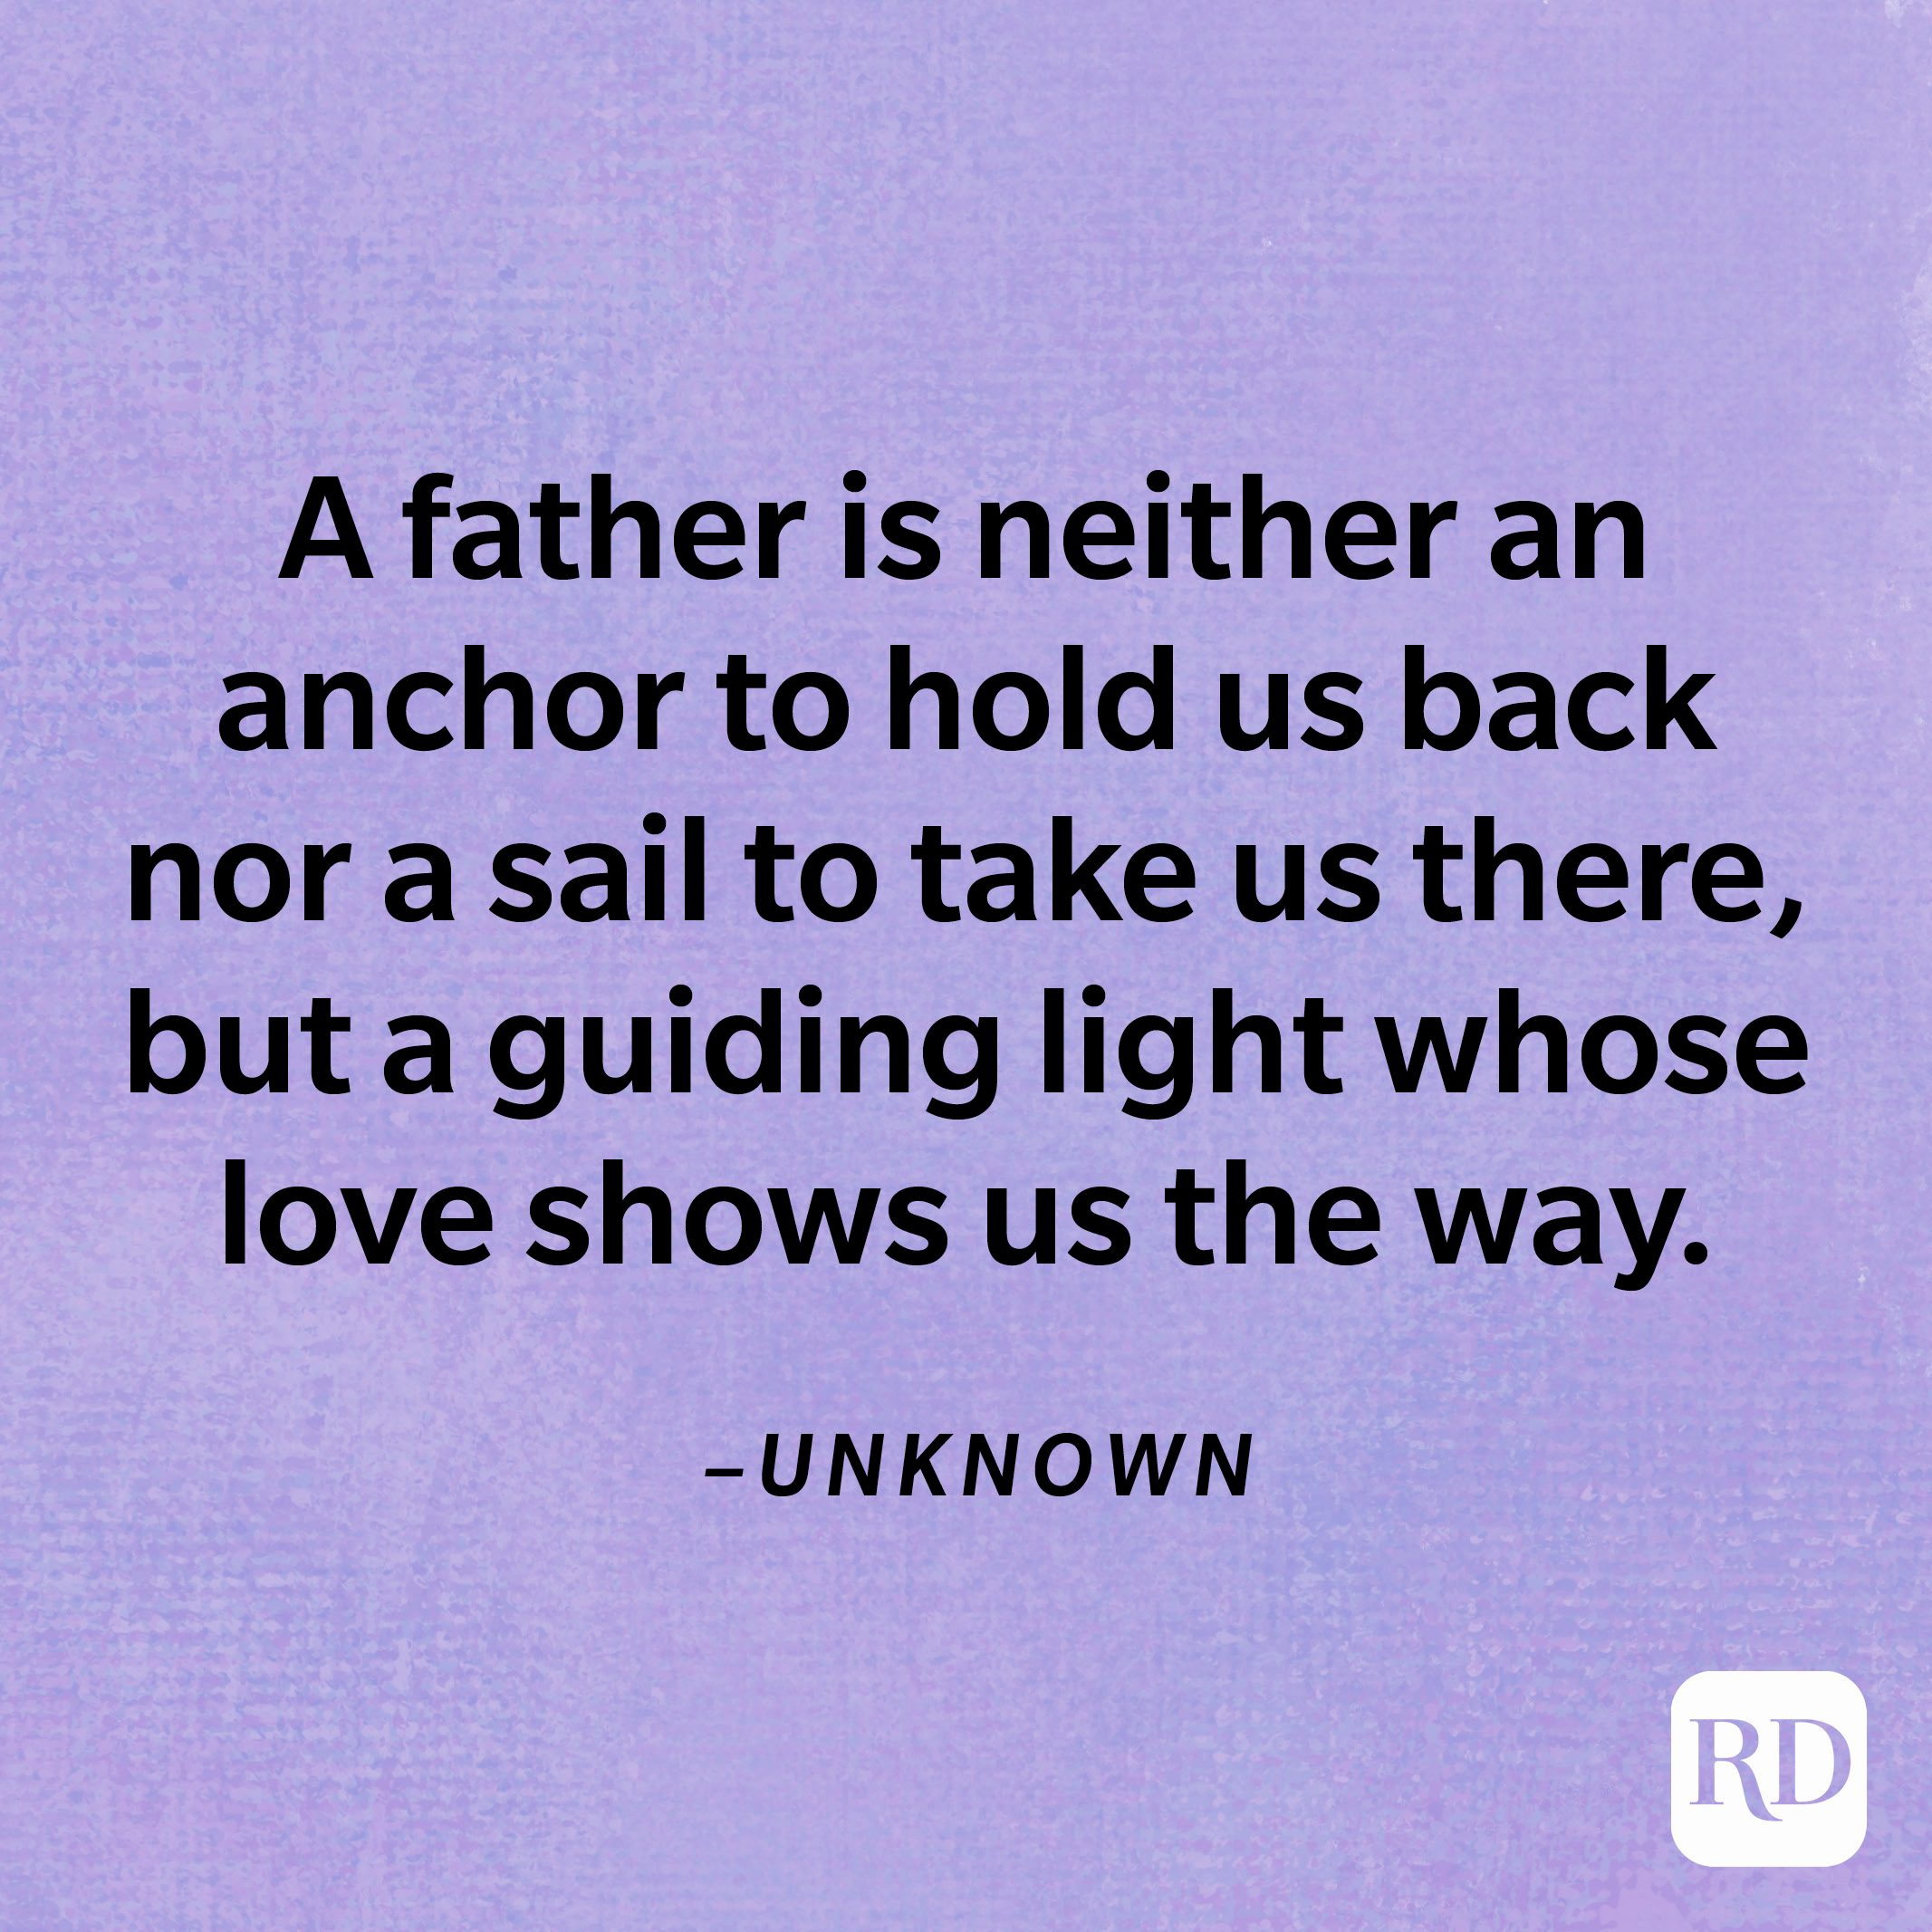 """""""A father is neither an anchor to hold us back nor a sail to take us there, but a guiding light whose love shows us the way.""""—Unknown"""